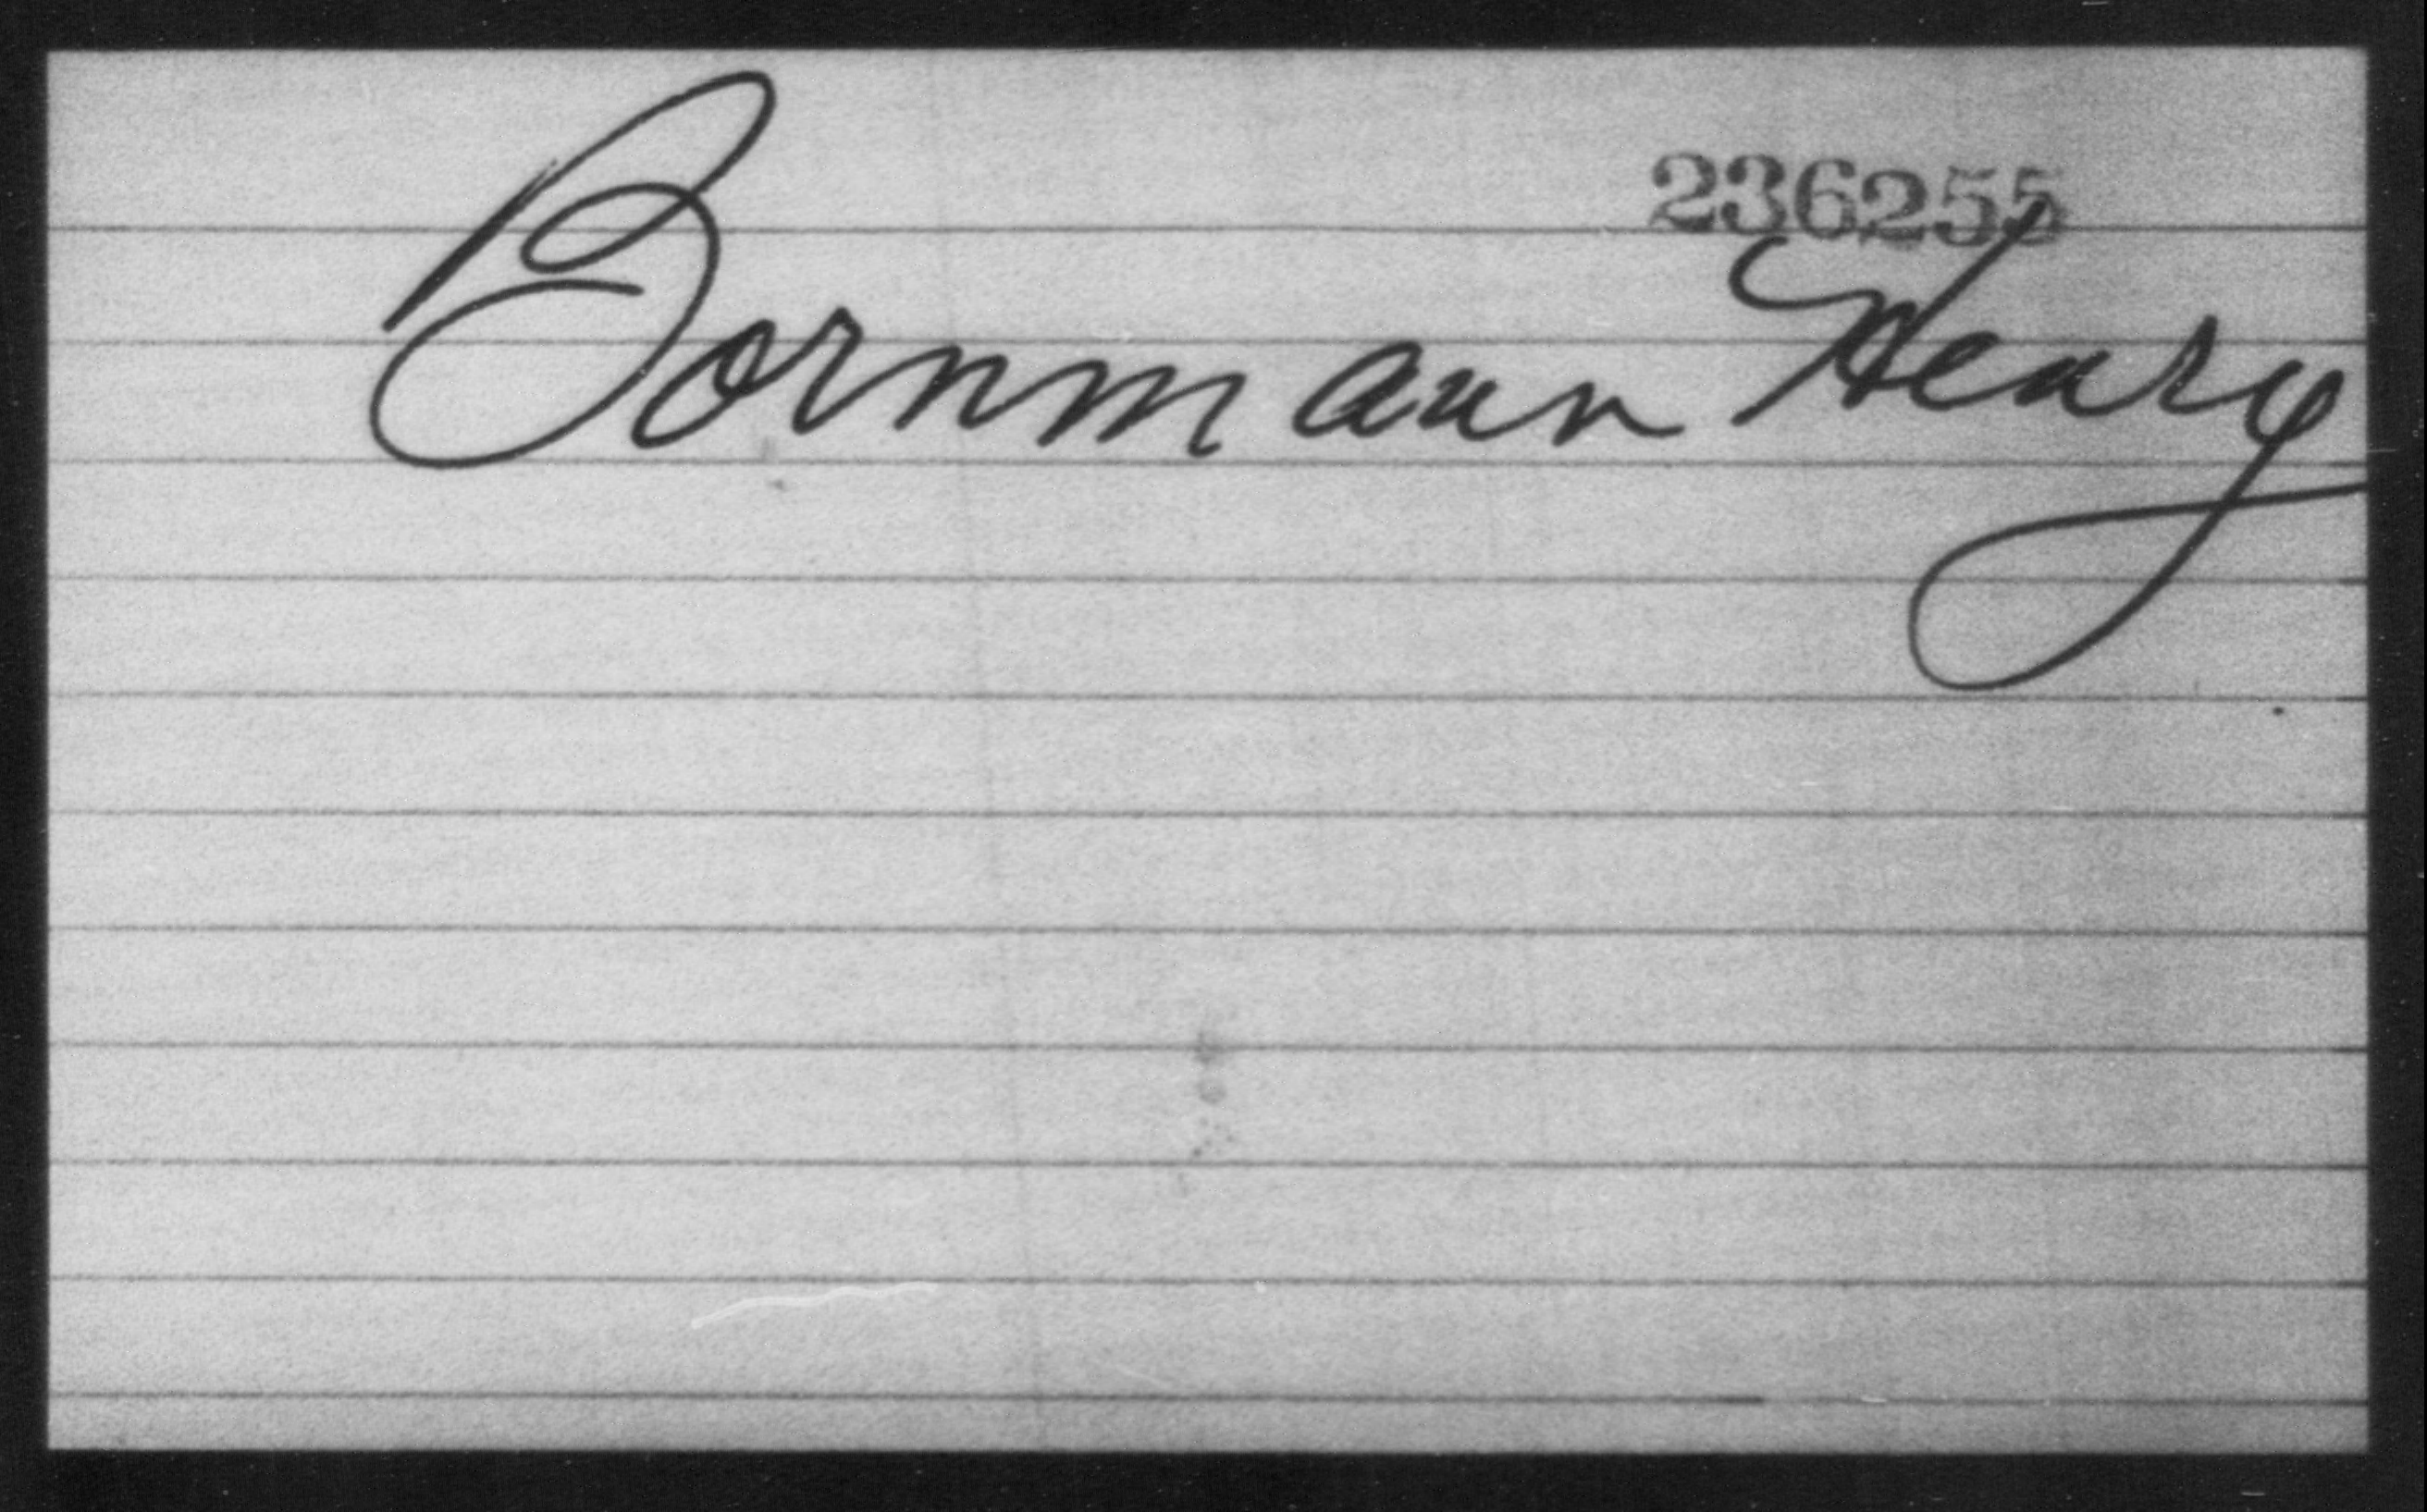 Bornmann, Henry - Born: [BLANK], Naturalized: [BLANK]